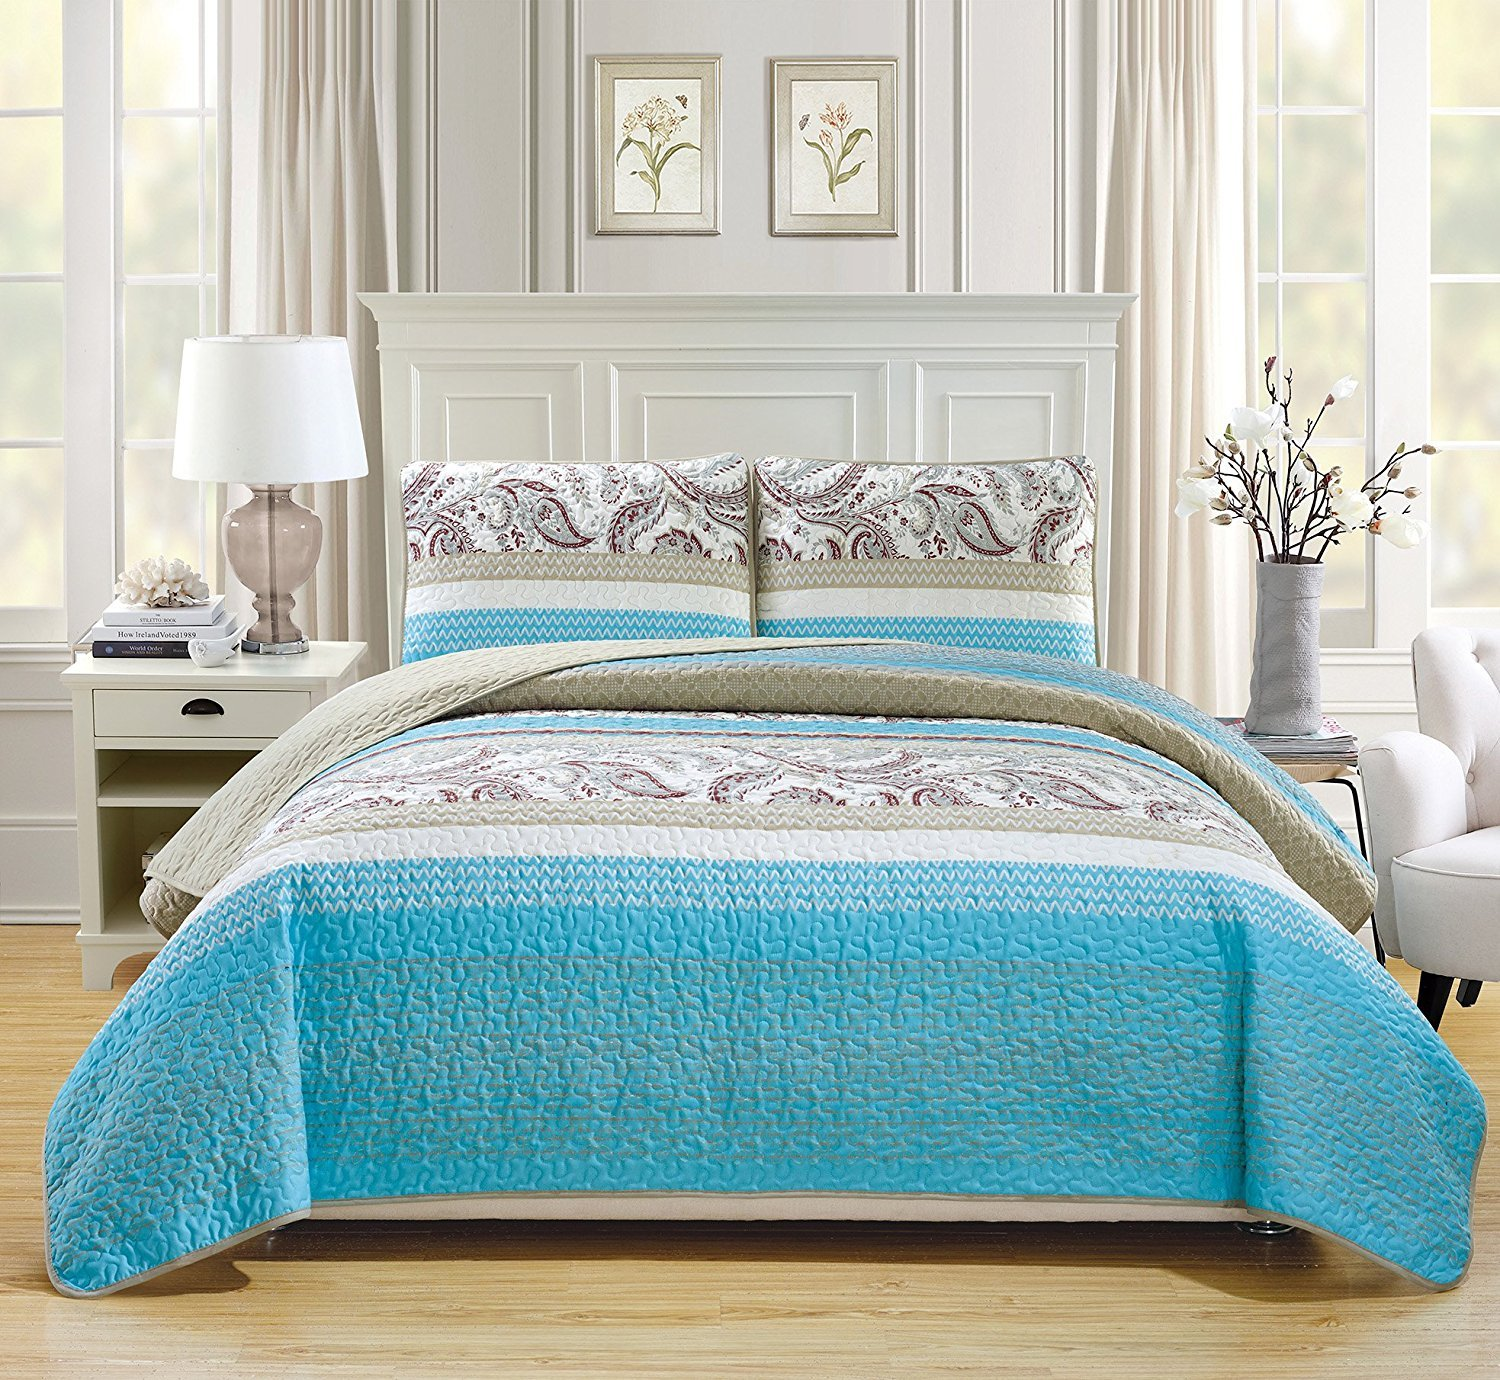 Fancy Collection 3pc King/California King Oversized Quilted Coverlet Bedspread Set Gray Turquoise Taupe Off White Burgundy Reversible New